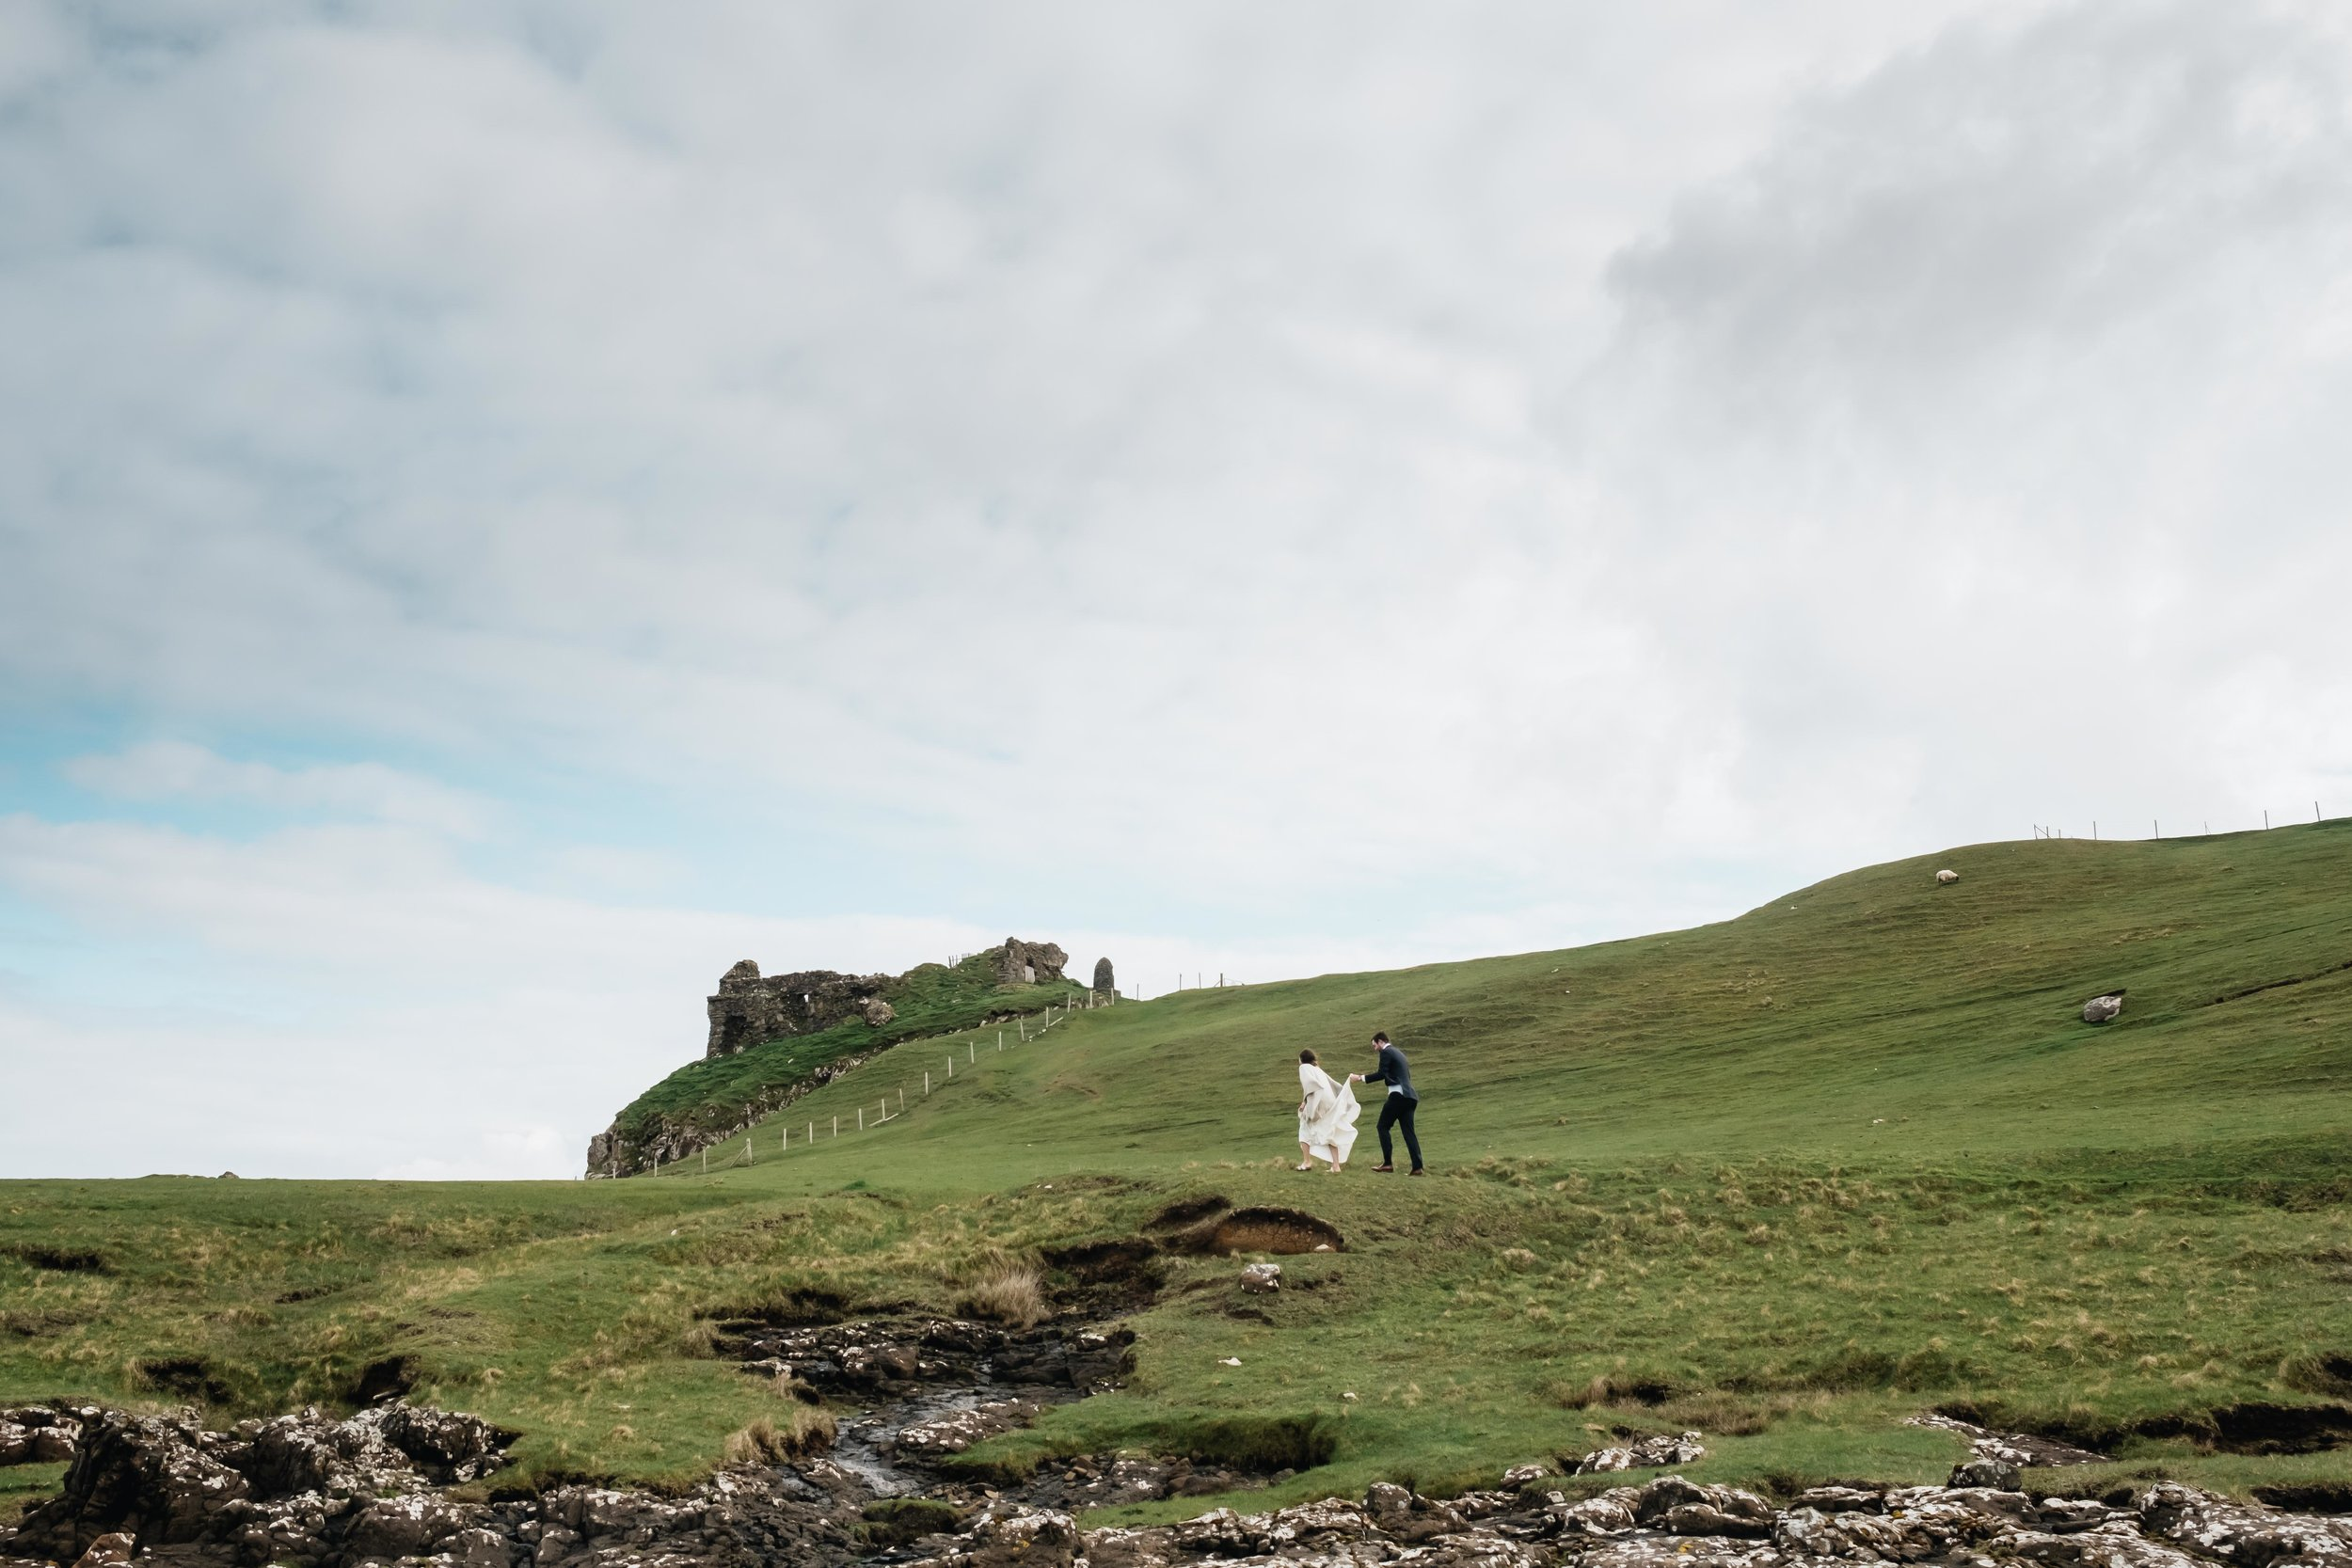 Couple walking up the hill to Duntullum Castle.